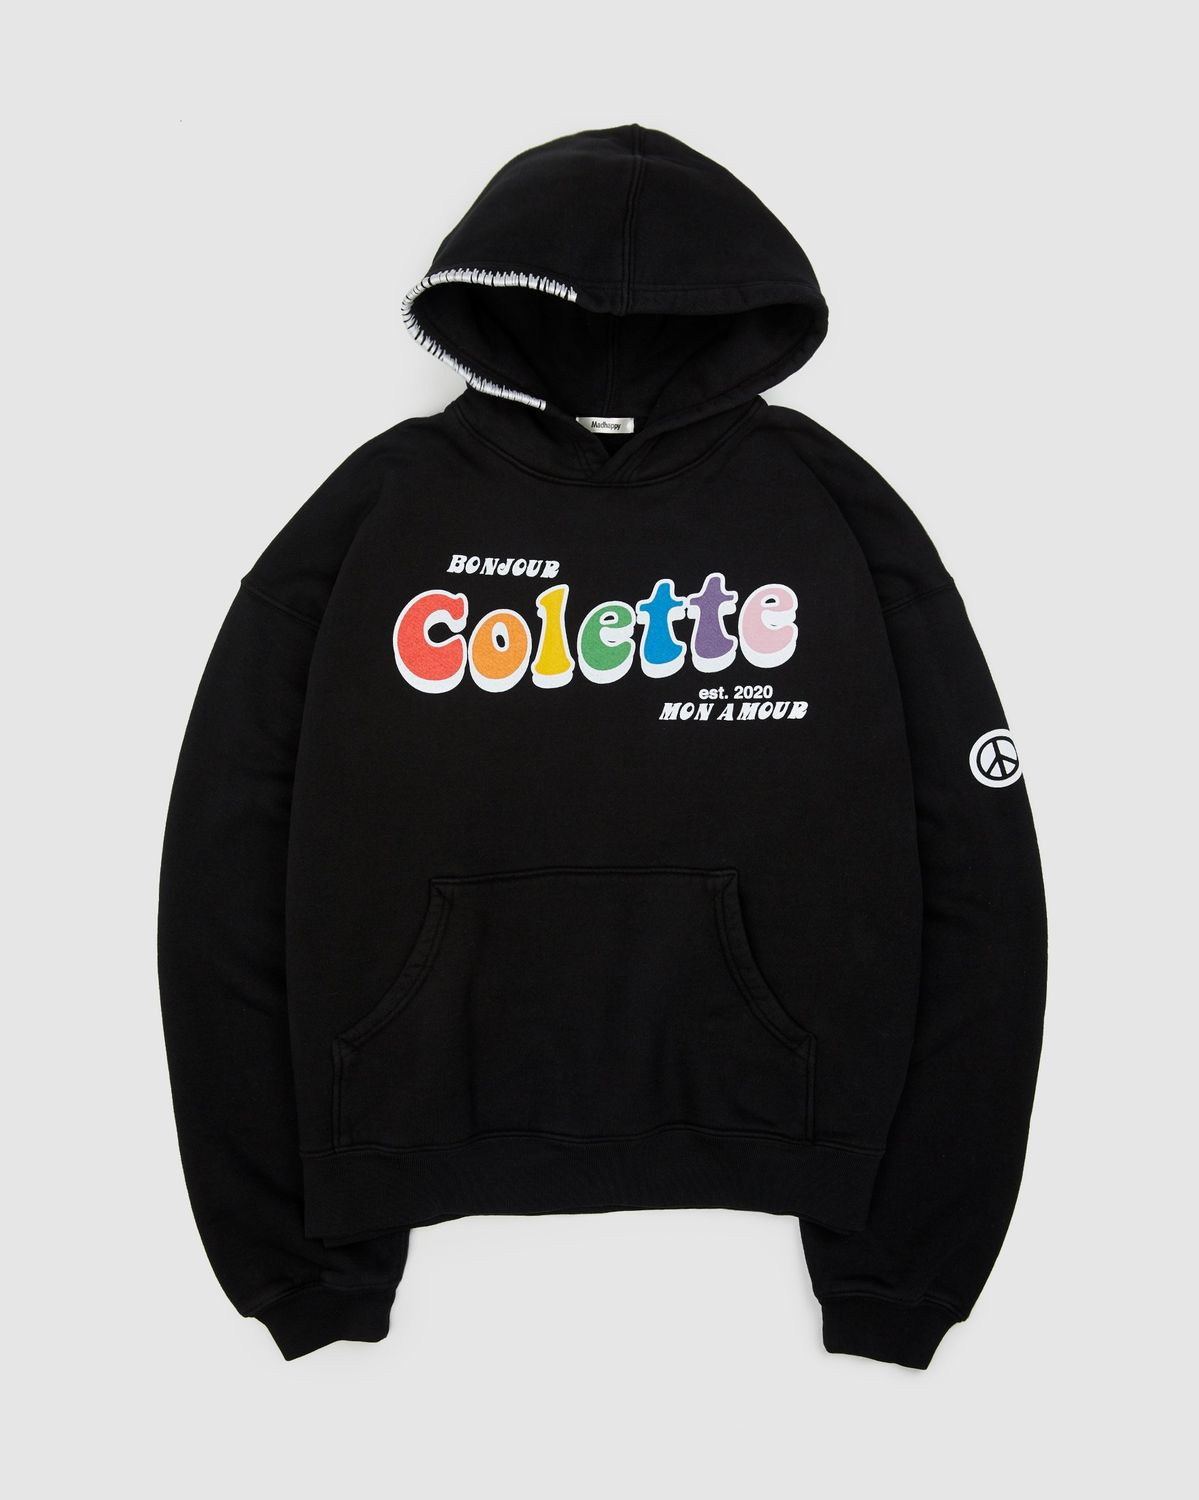 Colette Mon Amour x Madhappy  — Hoodie Black - Image 1